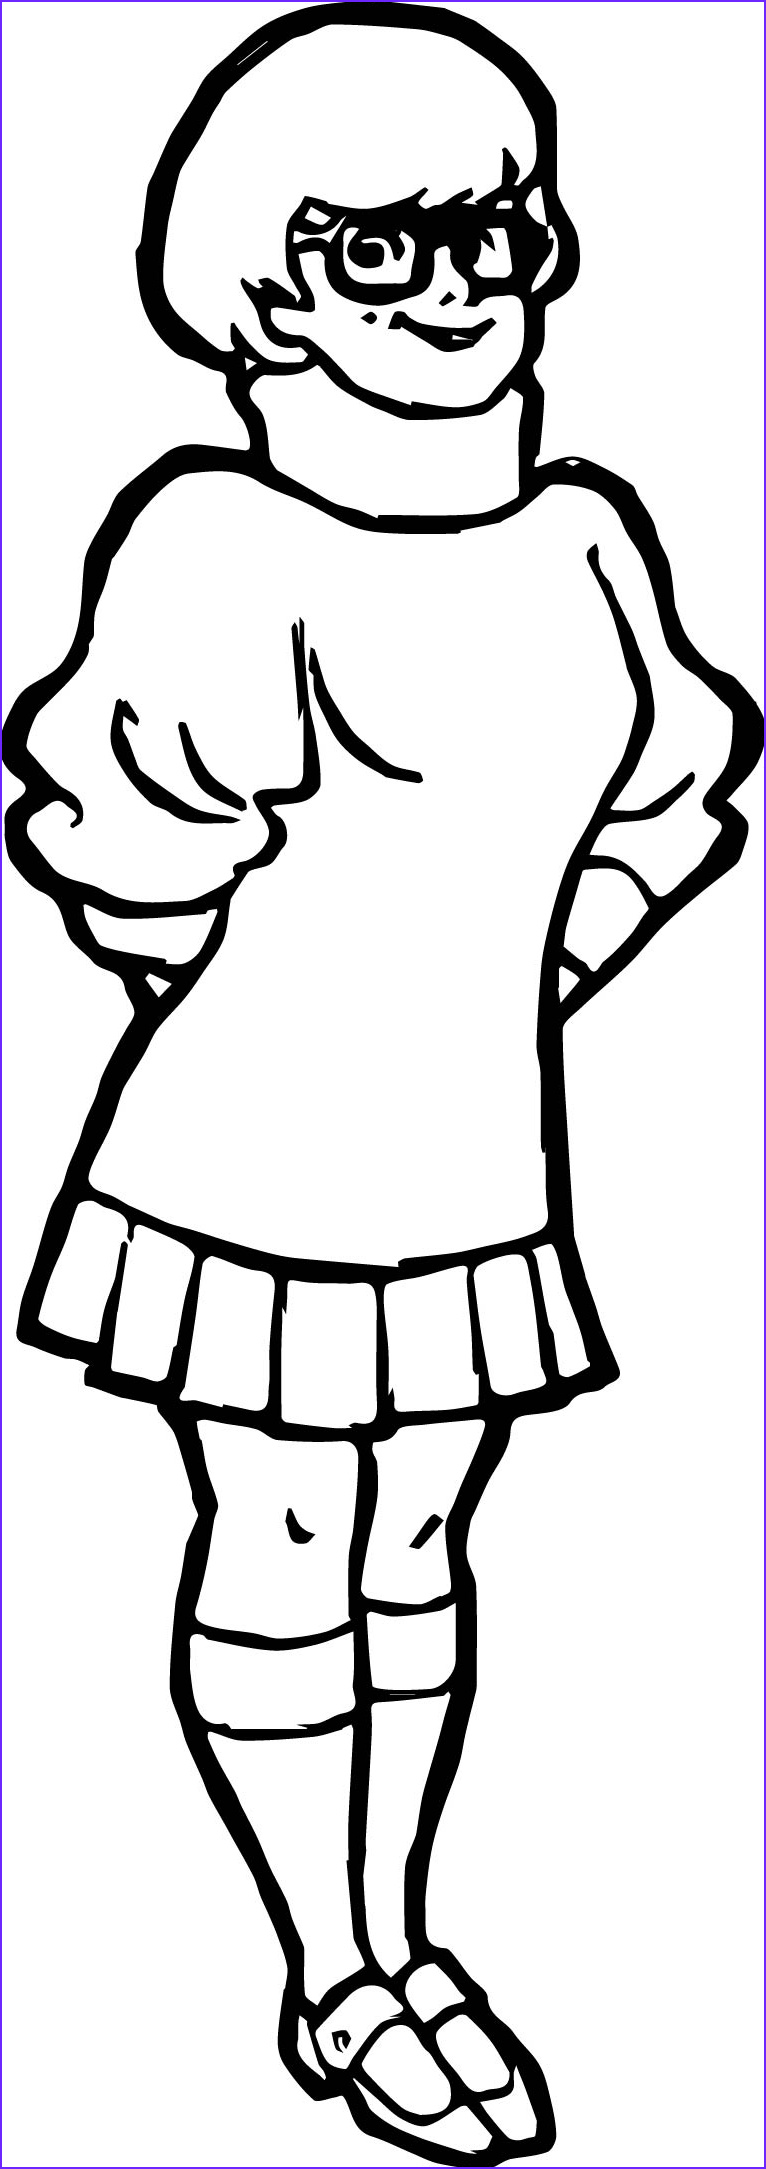 Scooby Doo Coloring Book New Photos Velma Dinkley Coloring Page